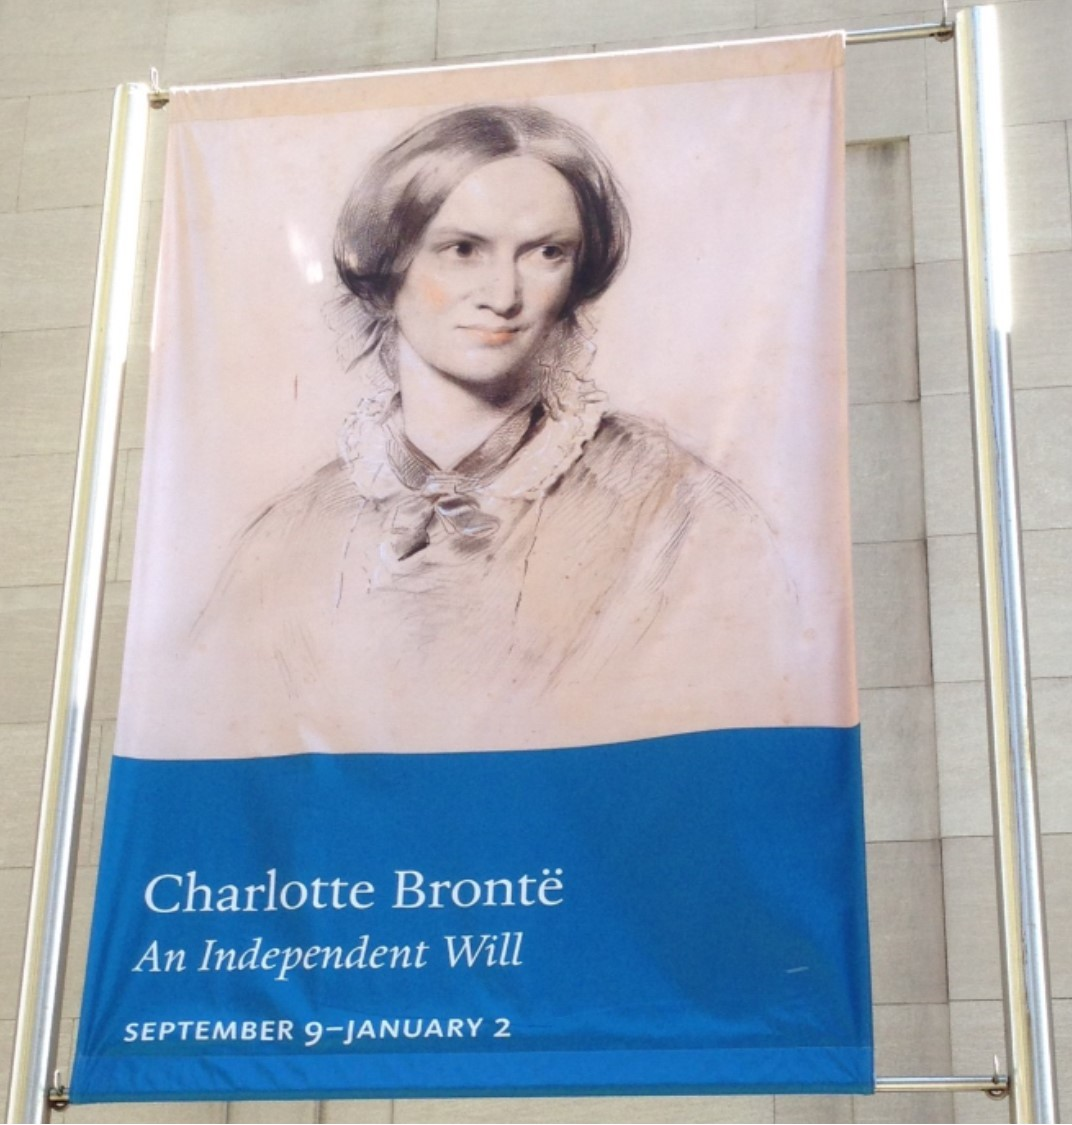 Charlotte Bronte: An Independent Will